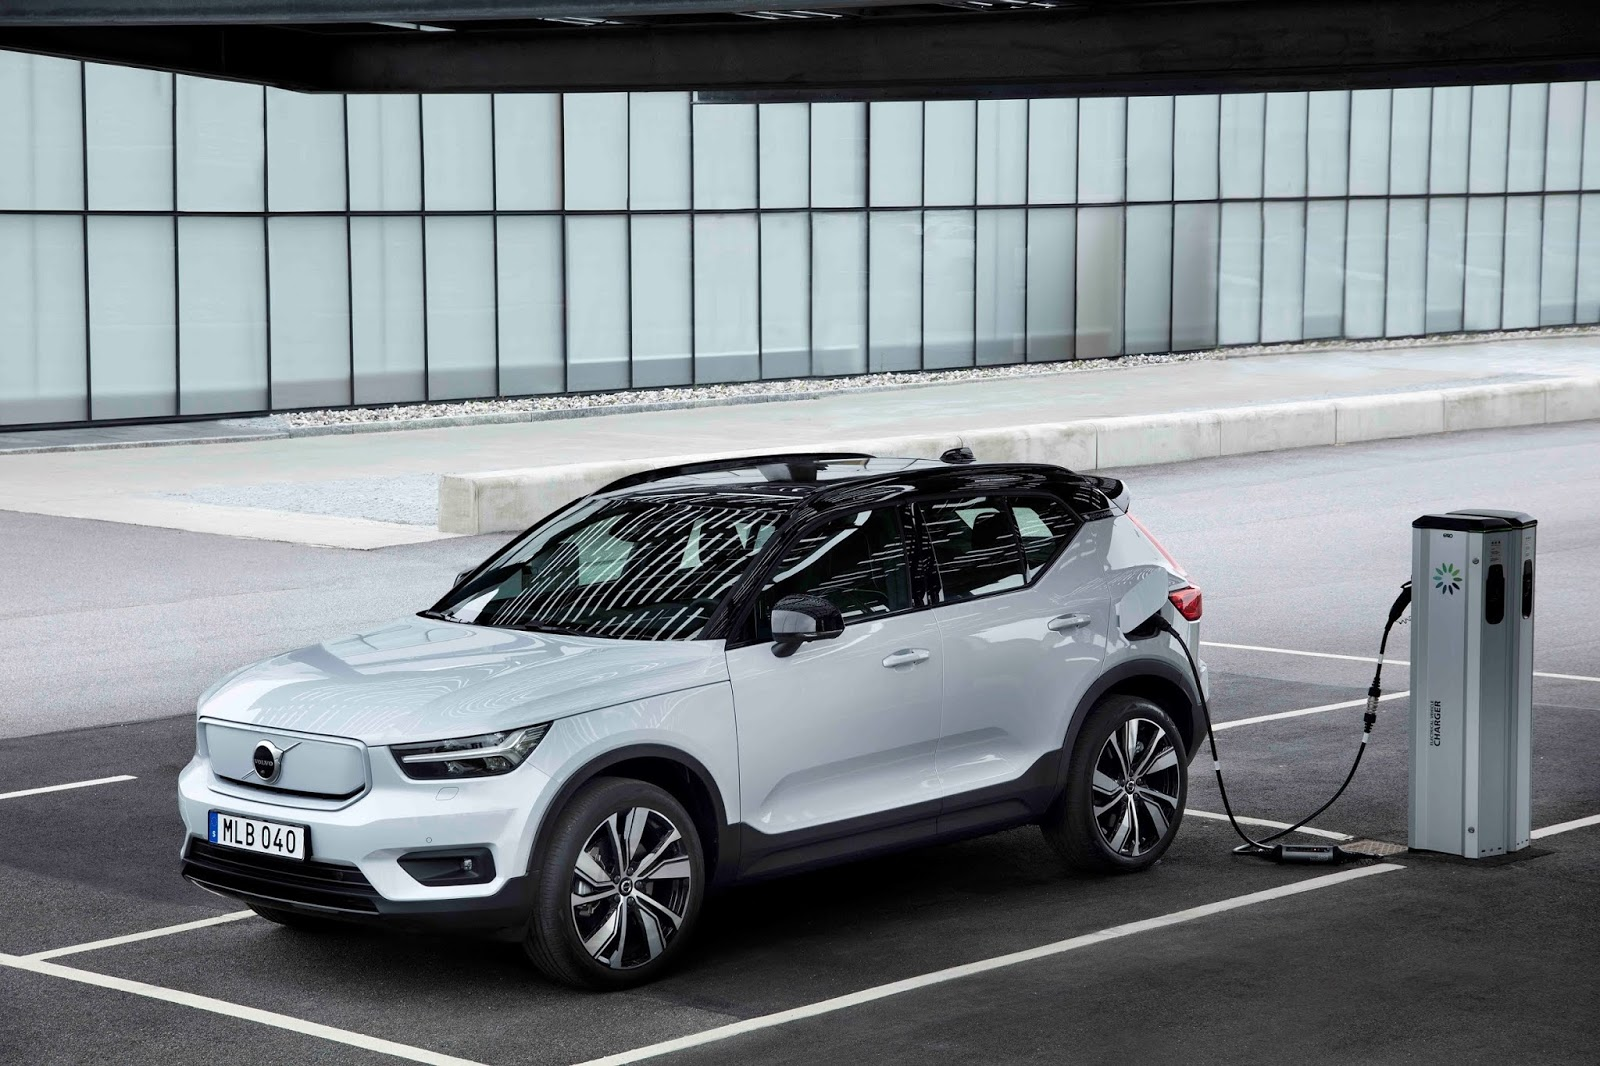 271709 Volvo XC40 Recharge P8 AWD in Glacier Silver Με 408 ίππους το Volvo XC40 Recharge